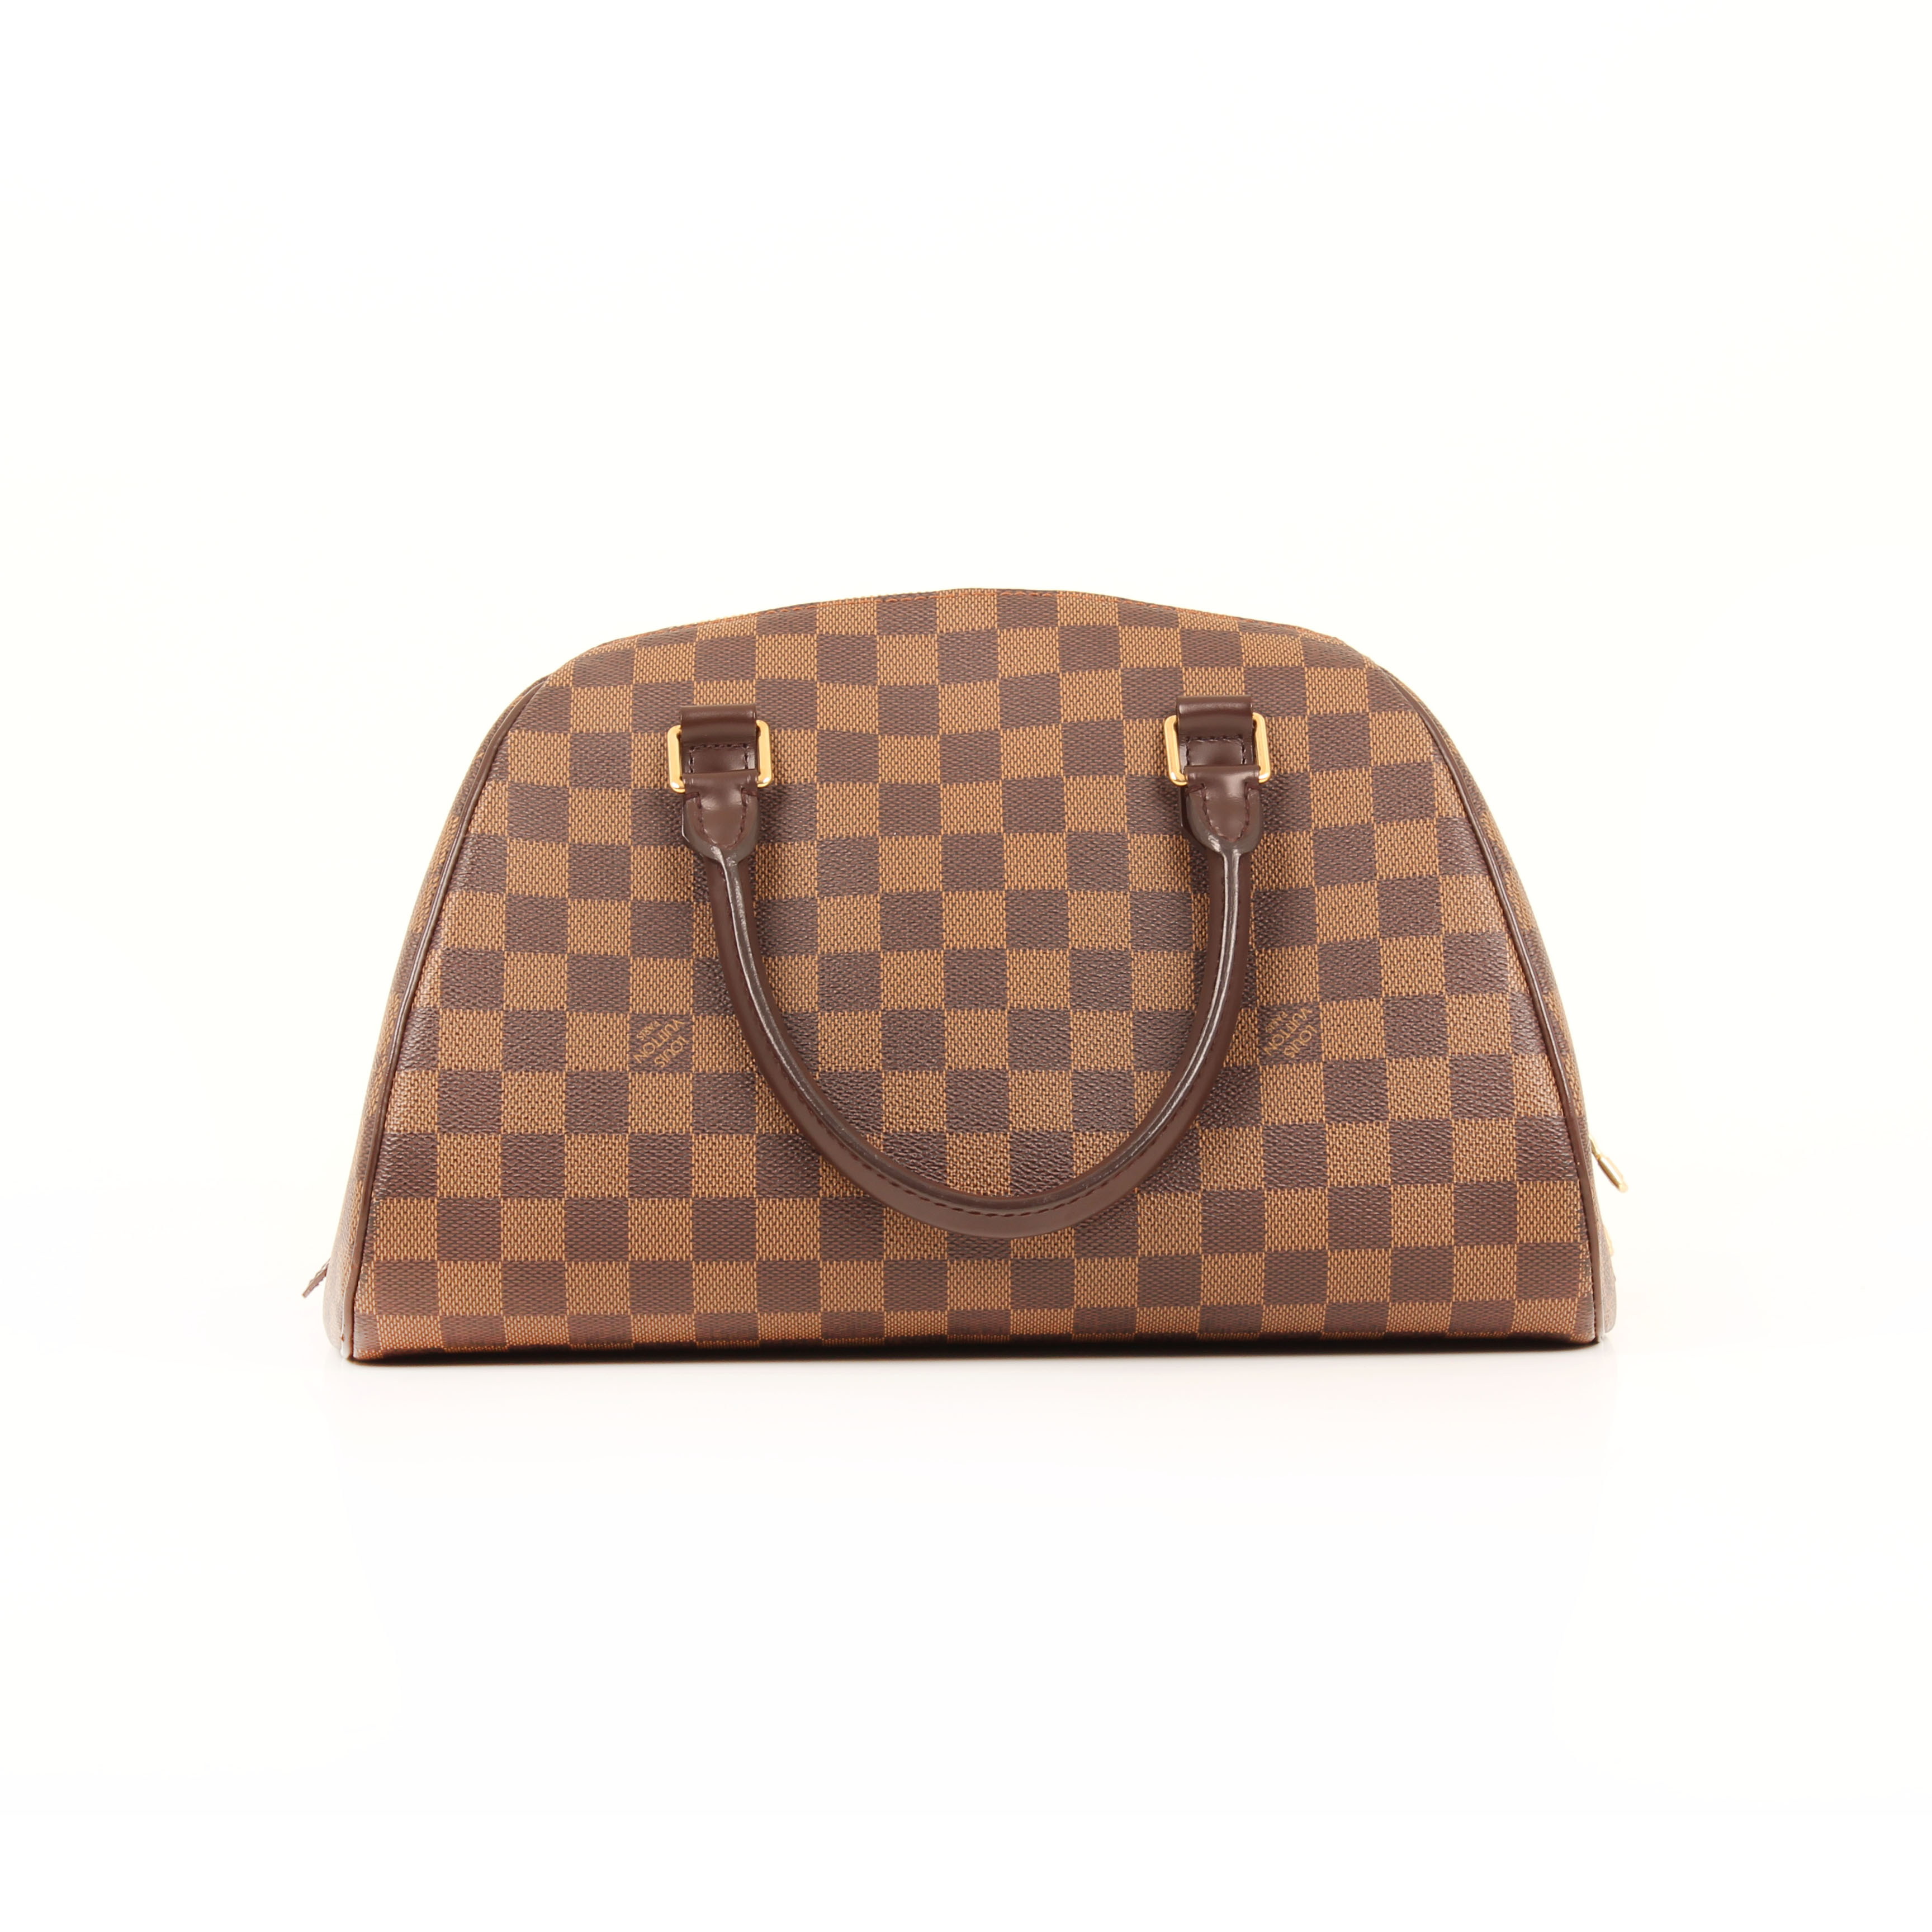 handbag louis vuitton ribera damier ebene back